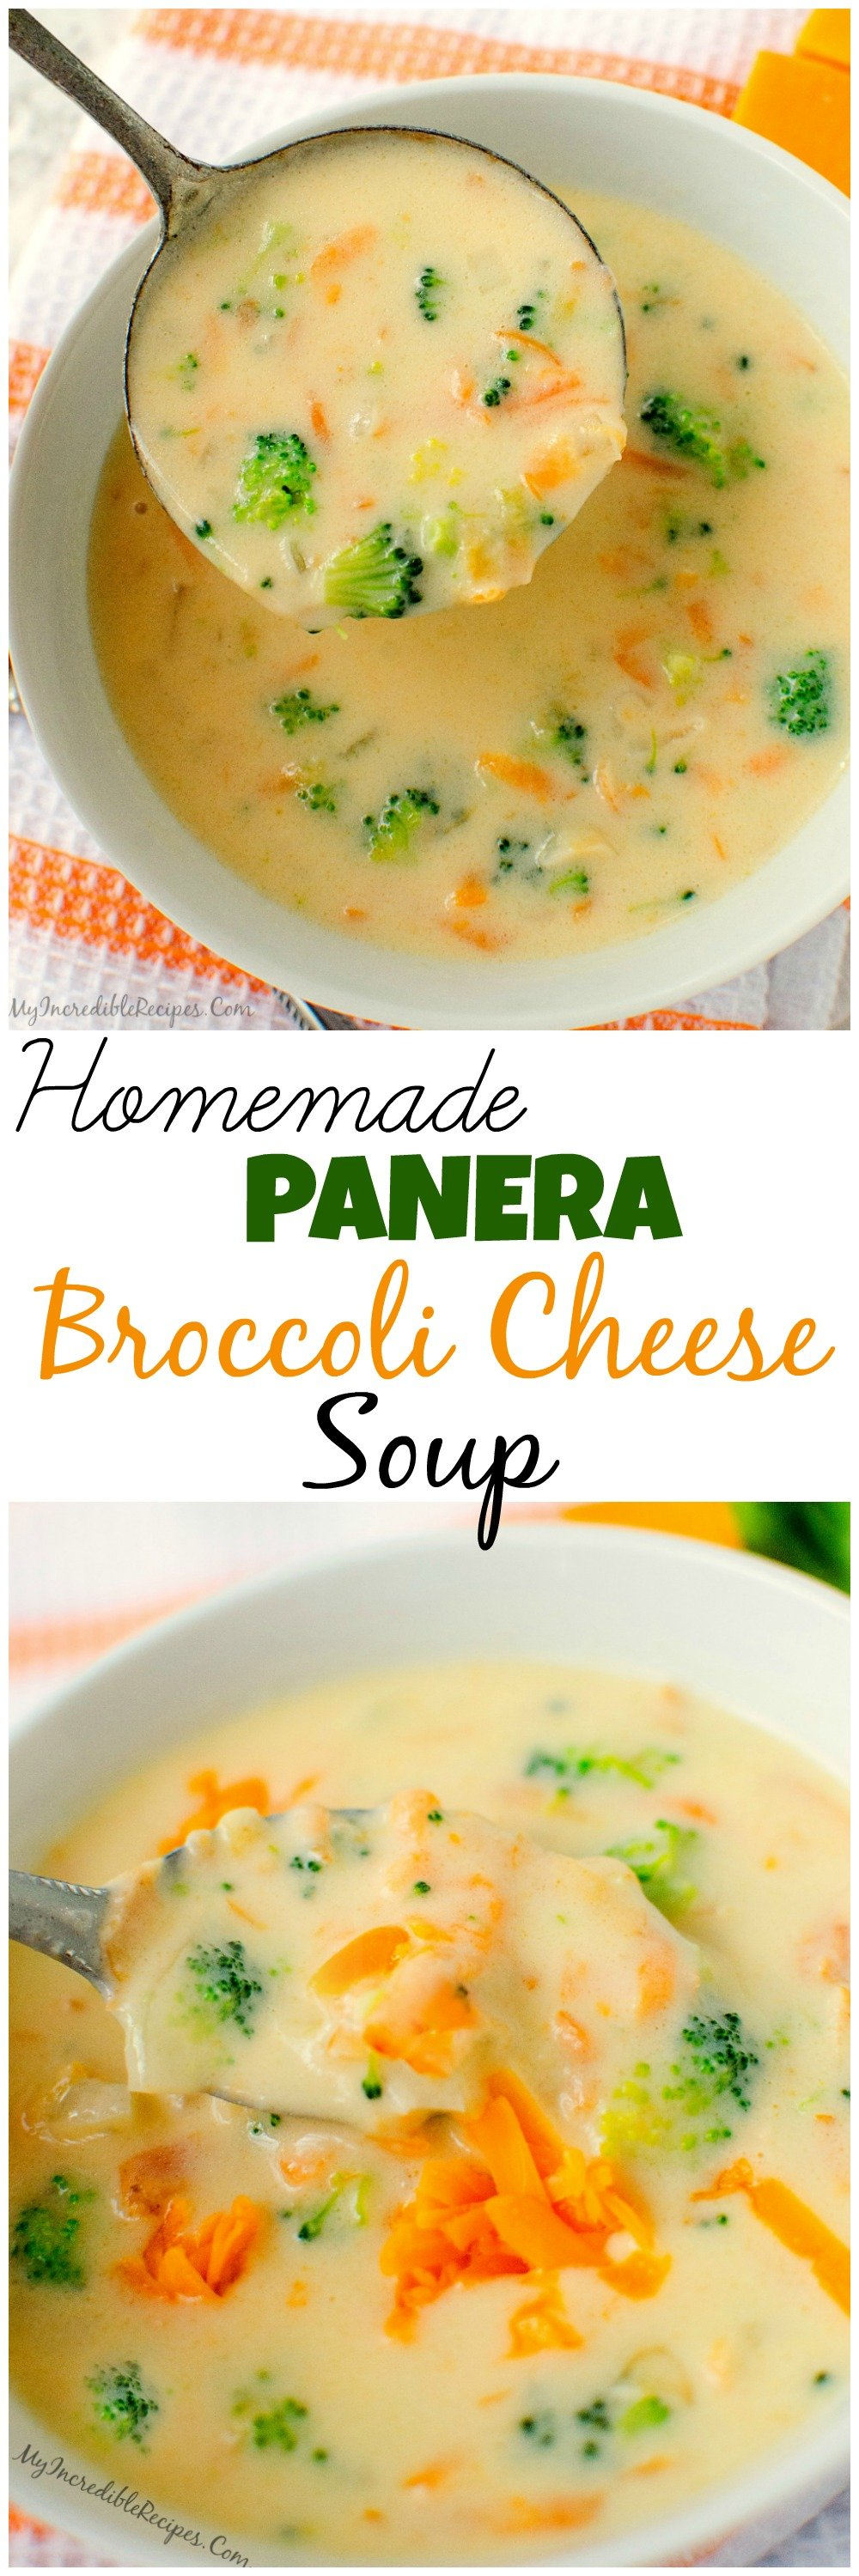 pinterestpanera